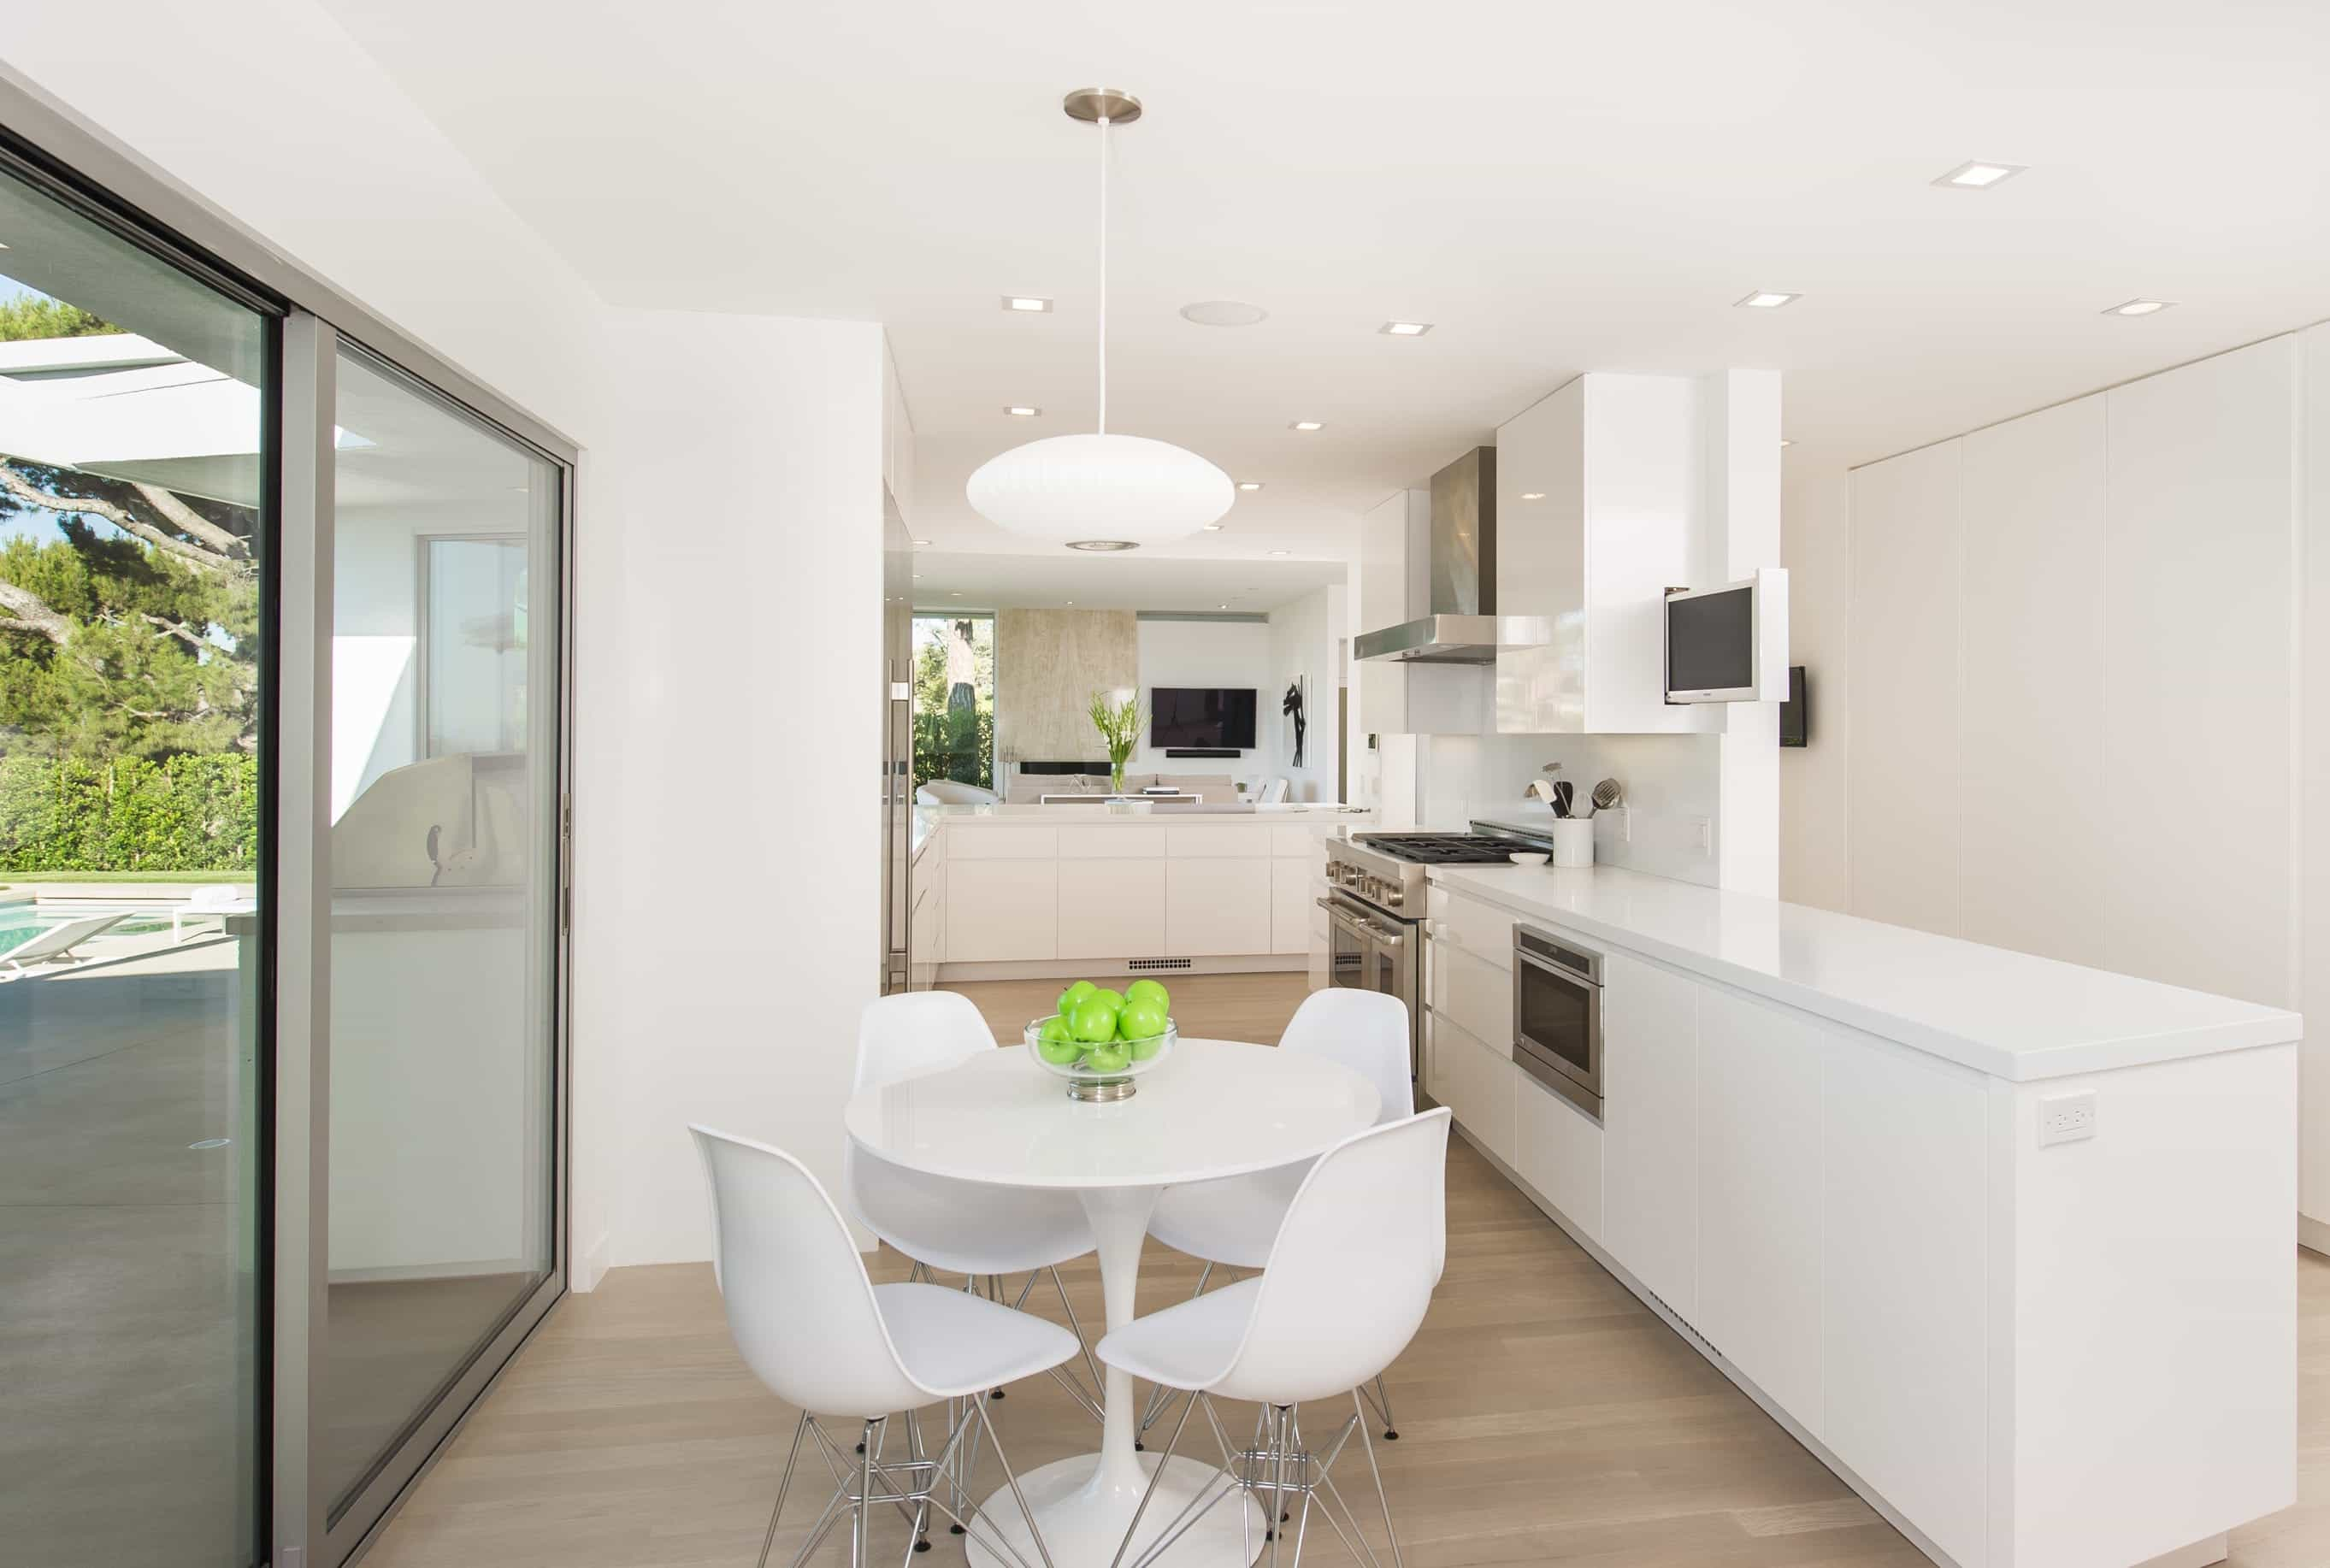 Eat In Apartment Kitchen And Dining Room Combo With Expansive Counter Space And White Round Table (View 12 of 25)